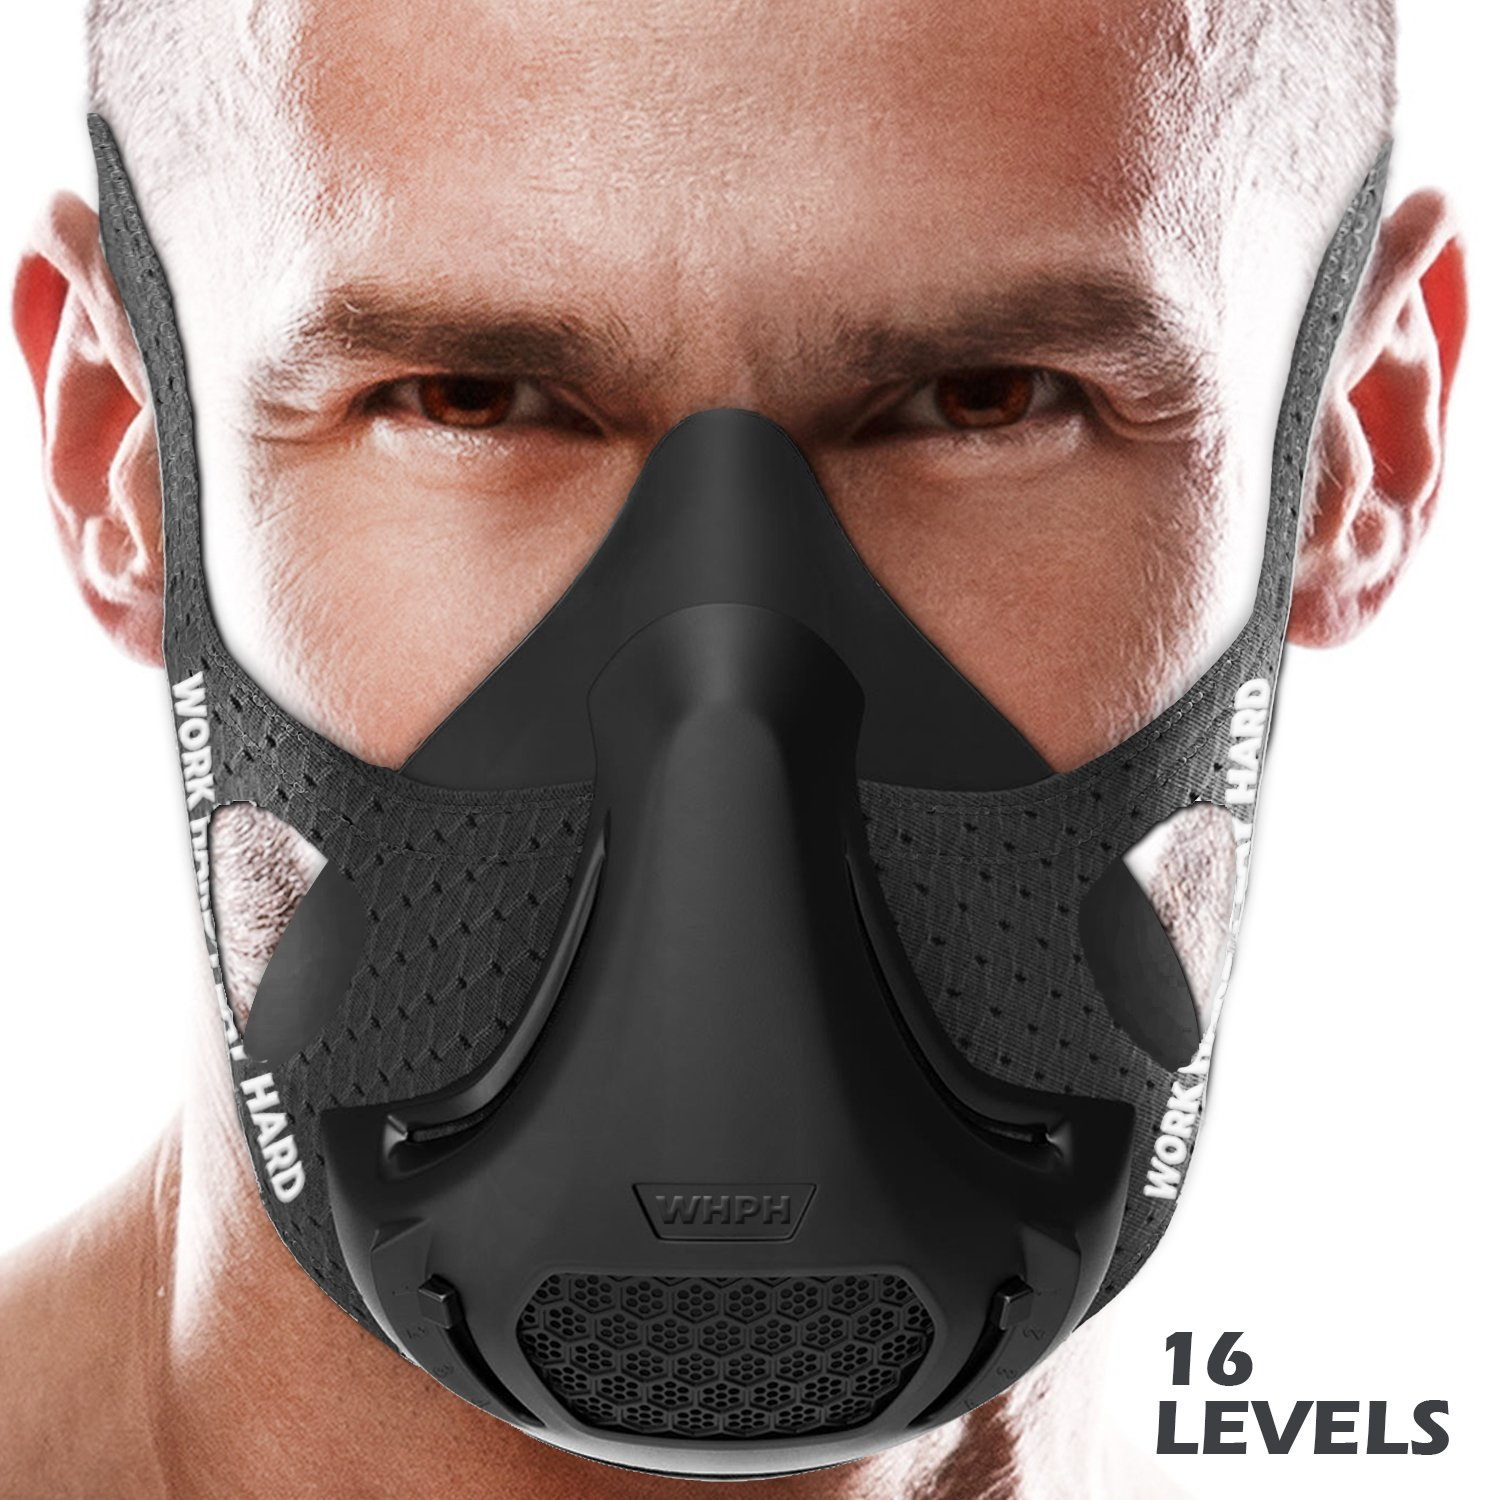 Workout Mask | Training Mask High Altitude Running Peak Resistance Breathing Oxygen Sport Fitness Cardio Endurance Gym Jogging Exercise Men Women Adult Elevation Simulation Hiit Trainer by Whph